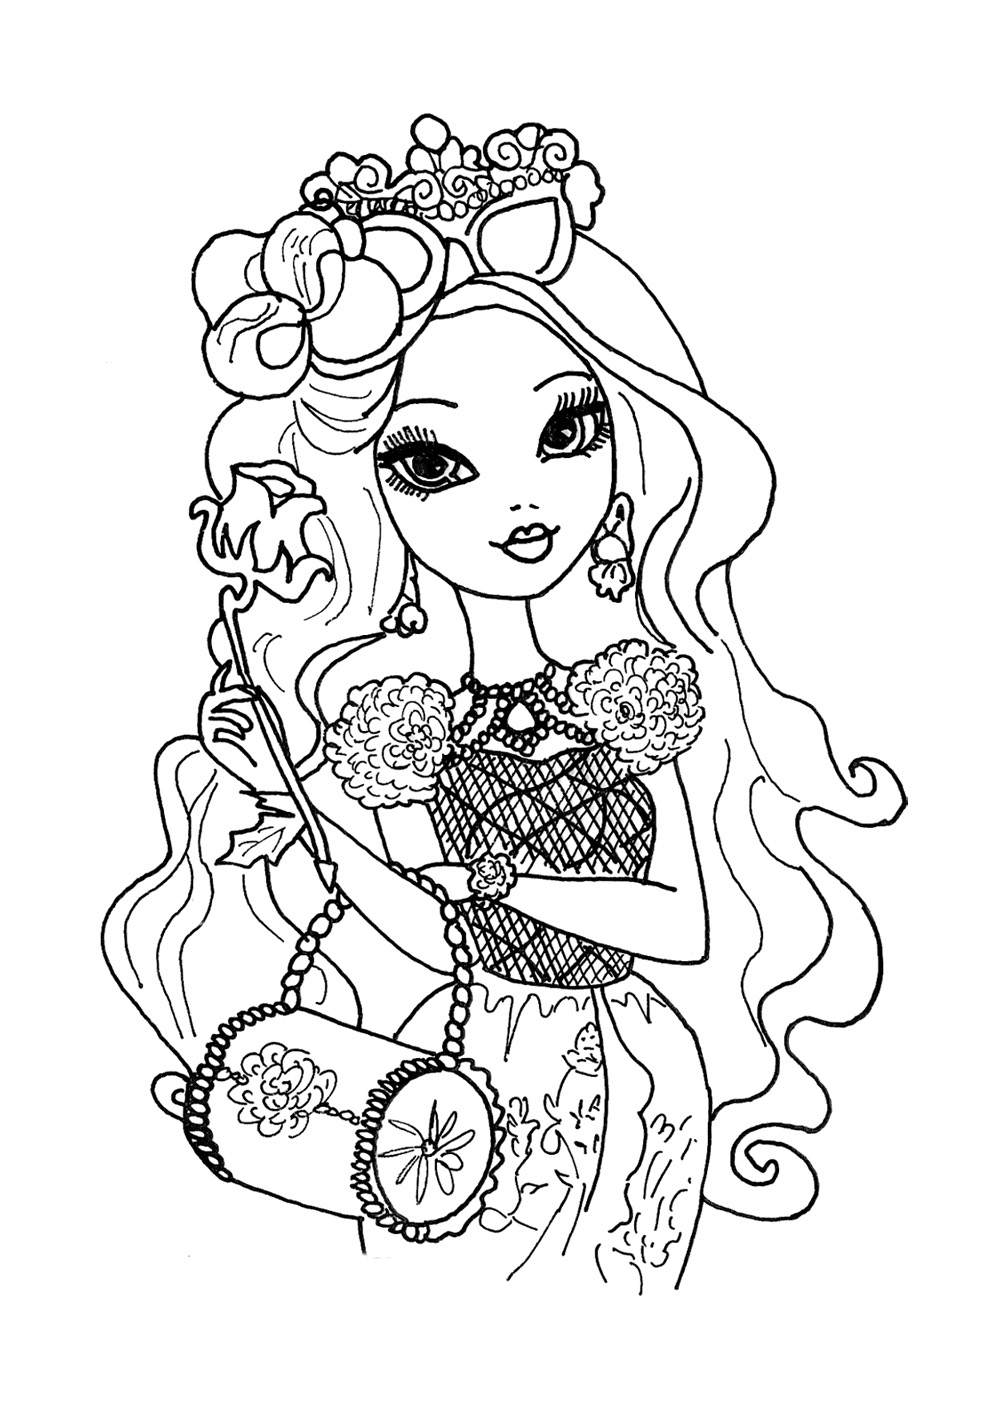 ever after high coloring pages ever after high coloring pages to download and print for free pages ever coloring high after